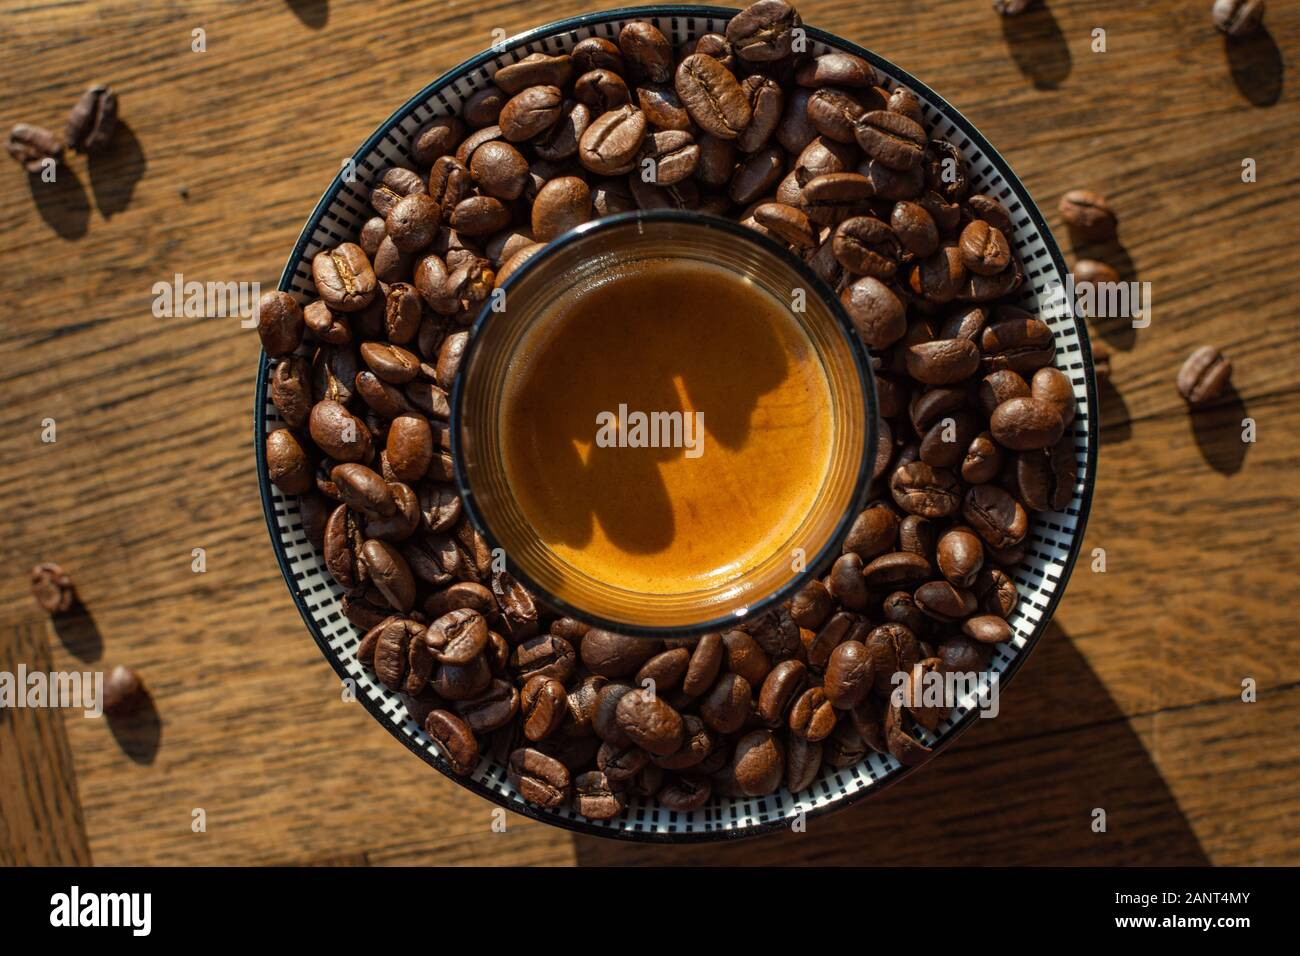 Top Down Coffe Shot Of Coffe Beans In Bowl With Espresso Crema In Center With Natural Light Stock Photo Alamy